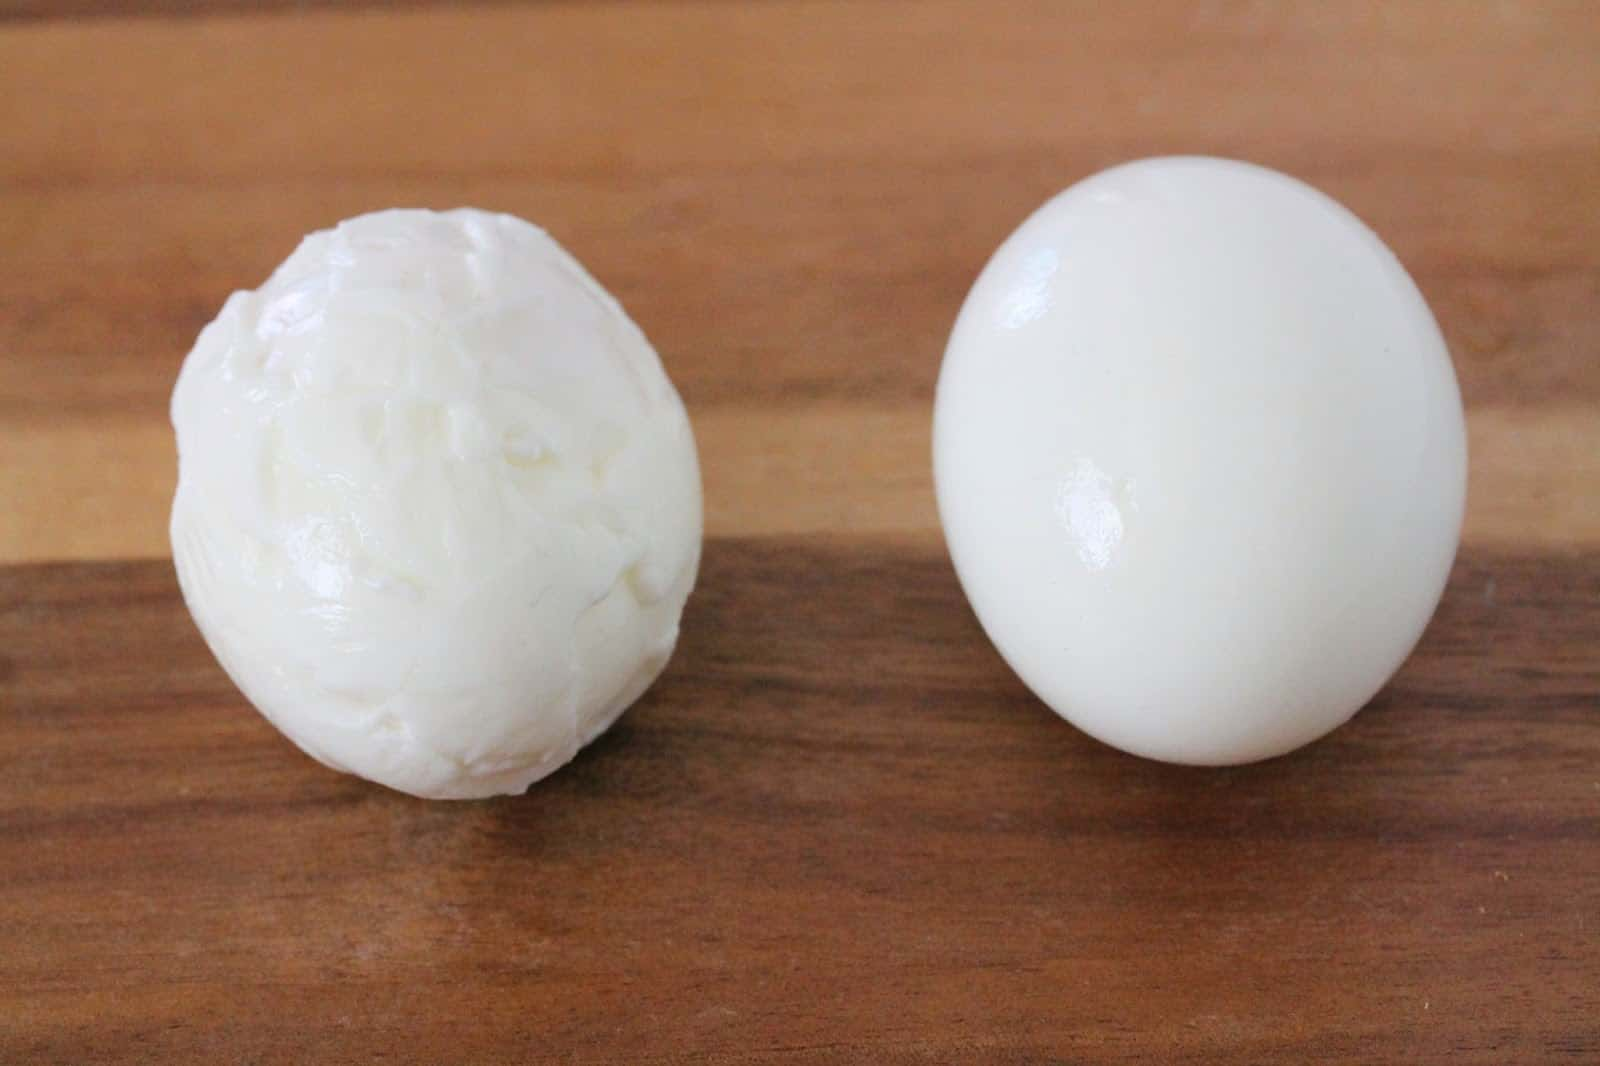 How to Boil Eggs: peeled eggs smooth vs lumpy